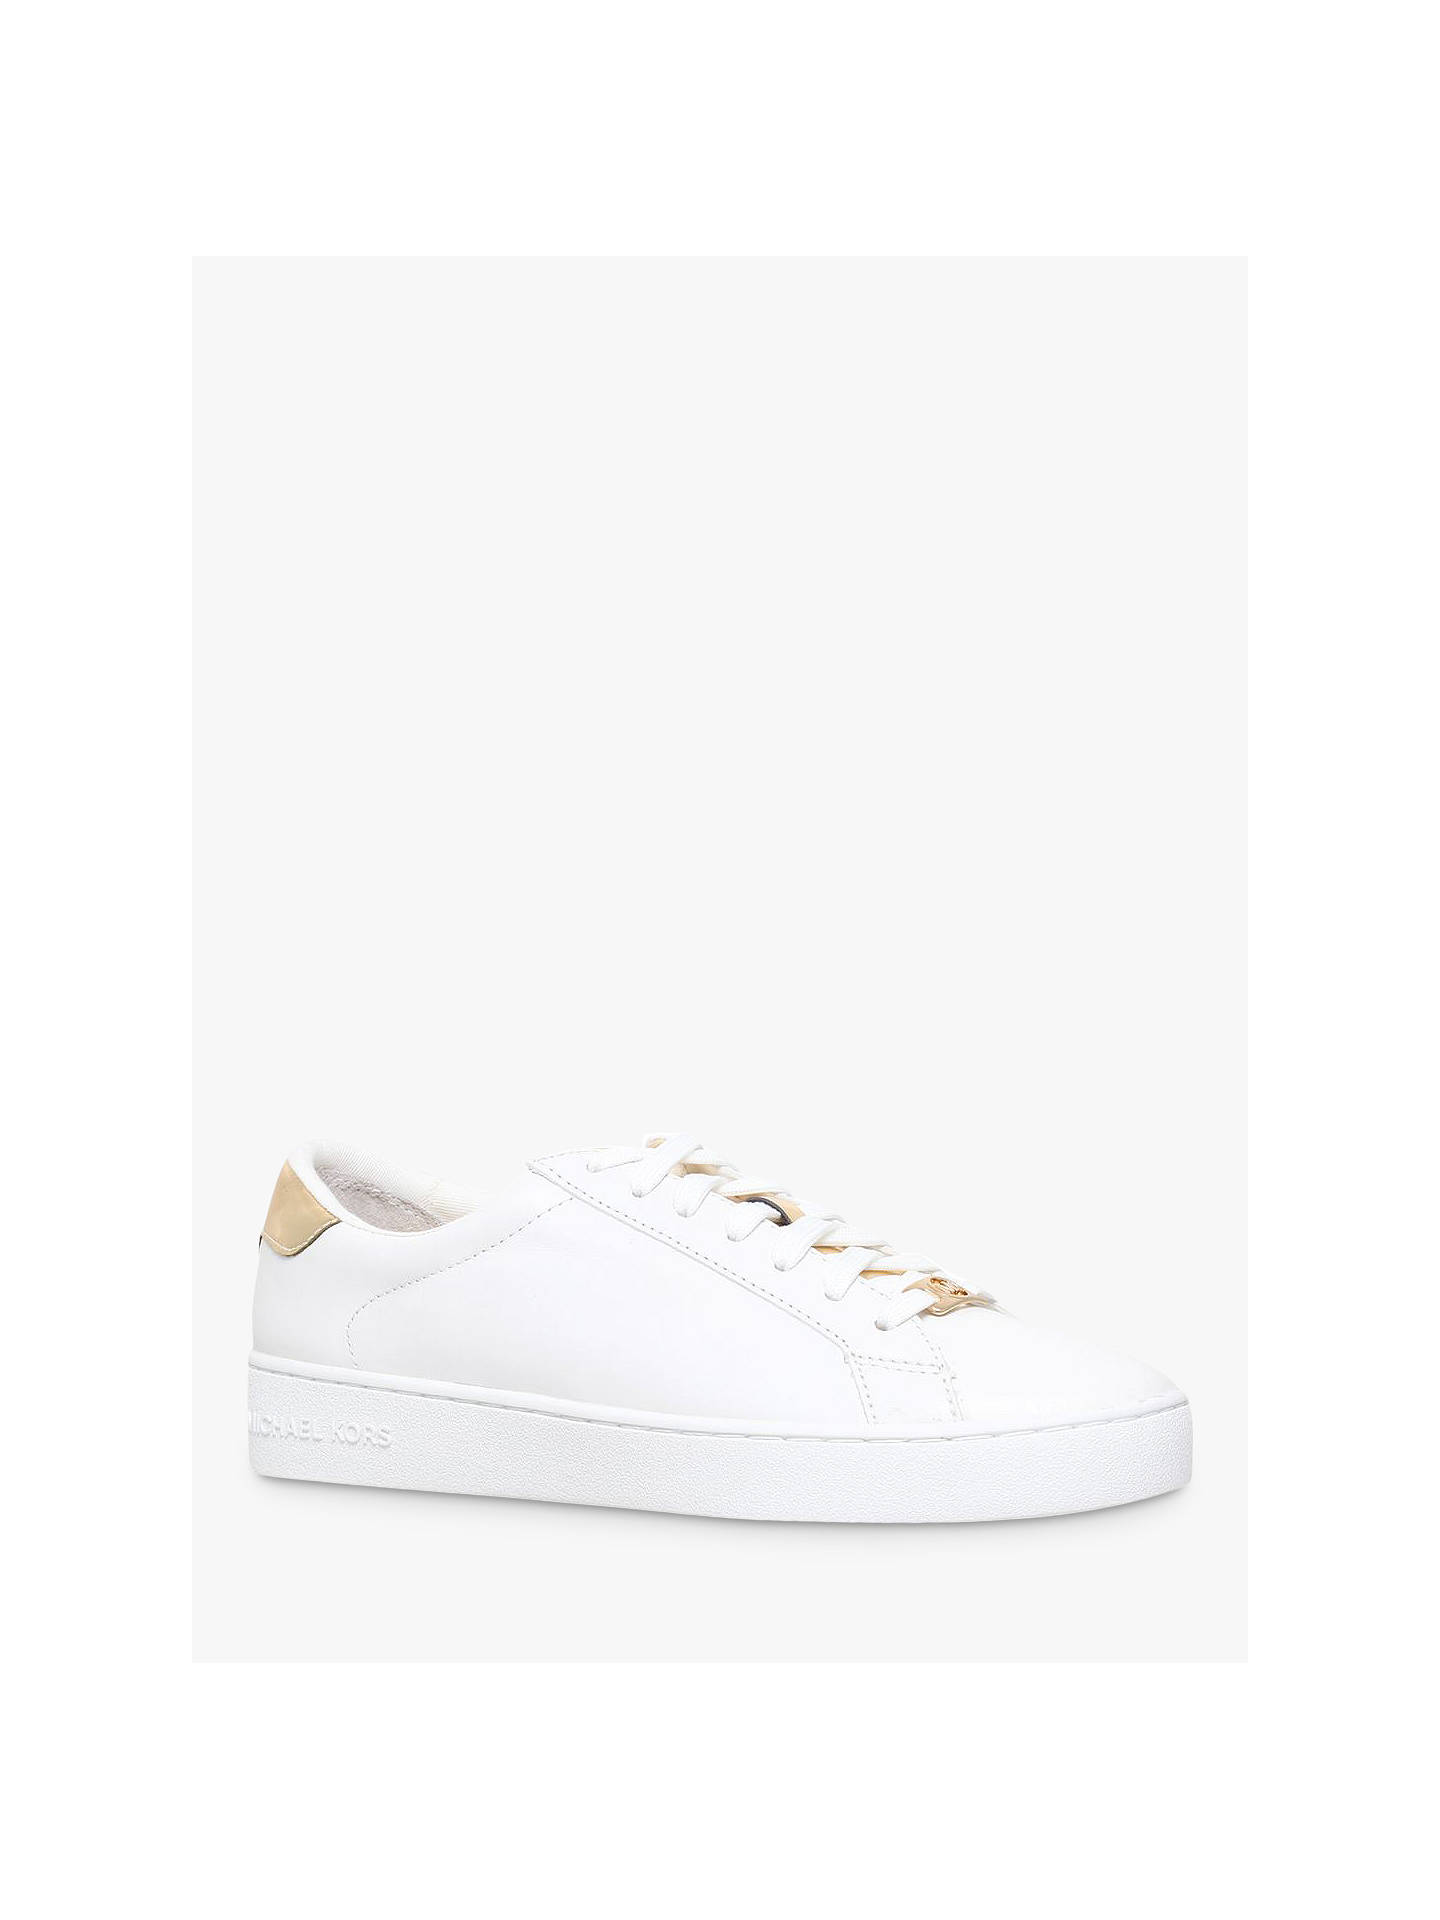 e8c26db34 Buy MICHAEL Michael Kors Irving Flat Trainers, White/Gold Leather, 7 Online  at ...